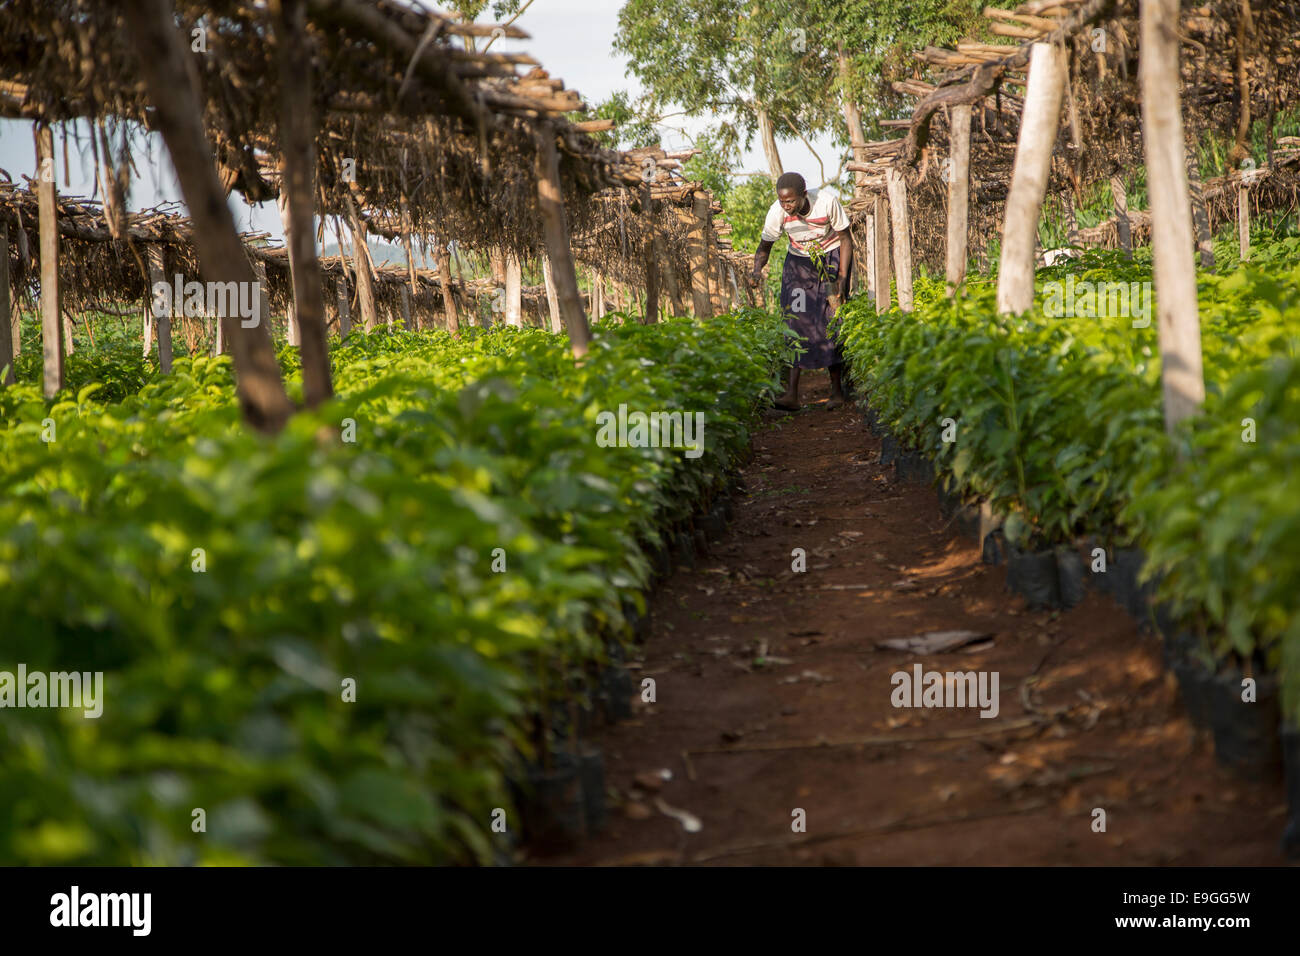 A farmer plants coffee seedlings in the nursery at Kabondo Farmers' Cooperative Society in Rachuonyo South, - Stock Image